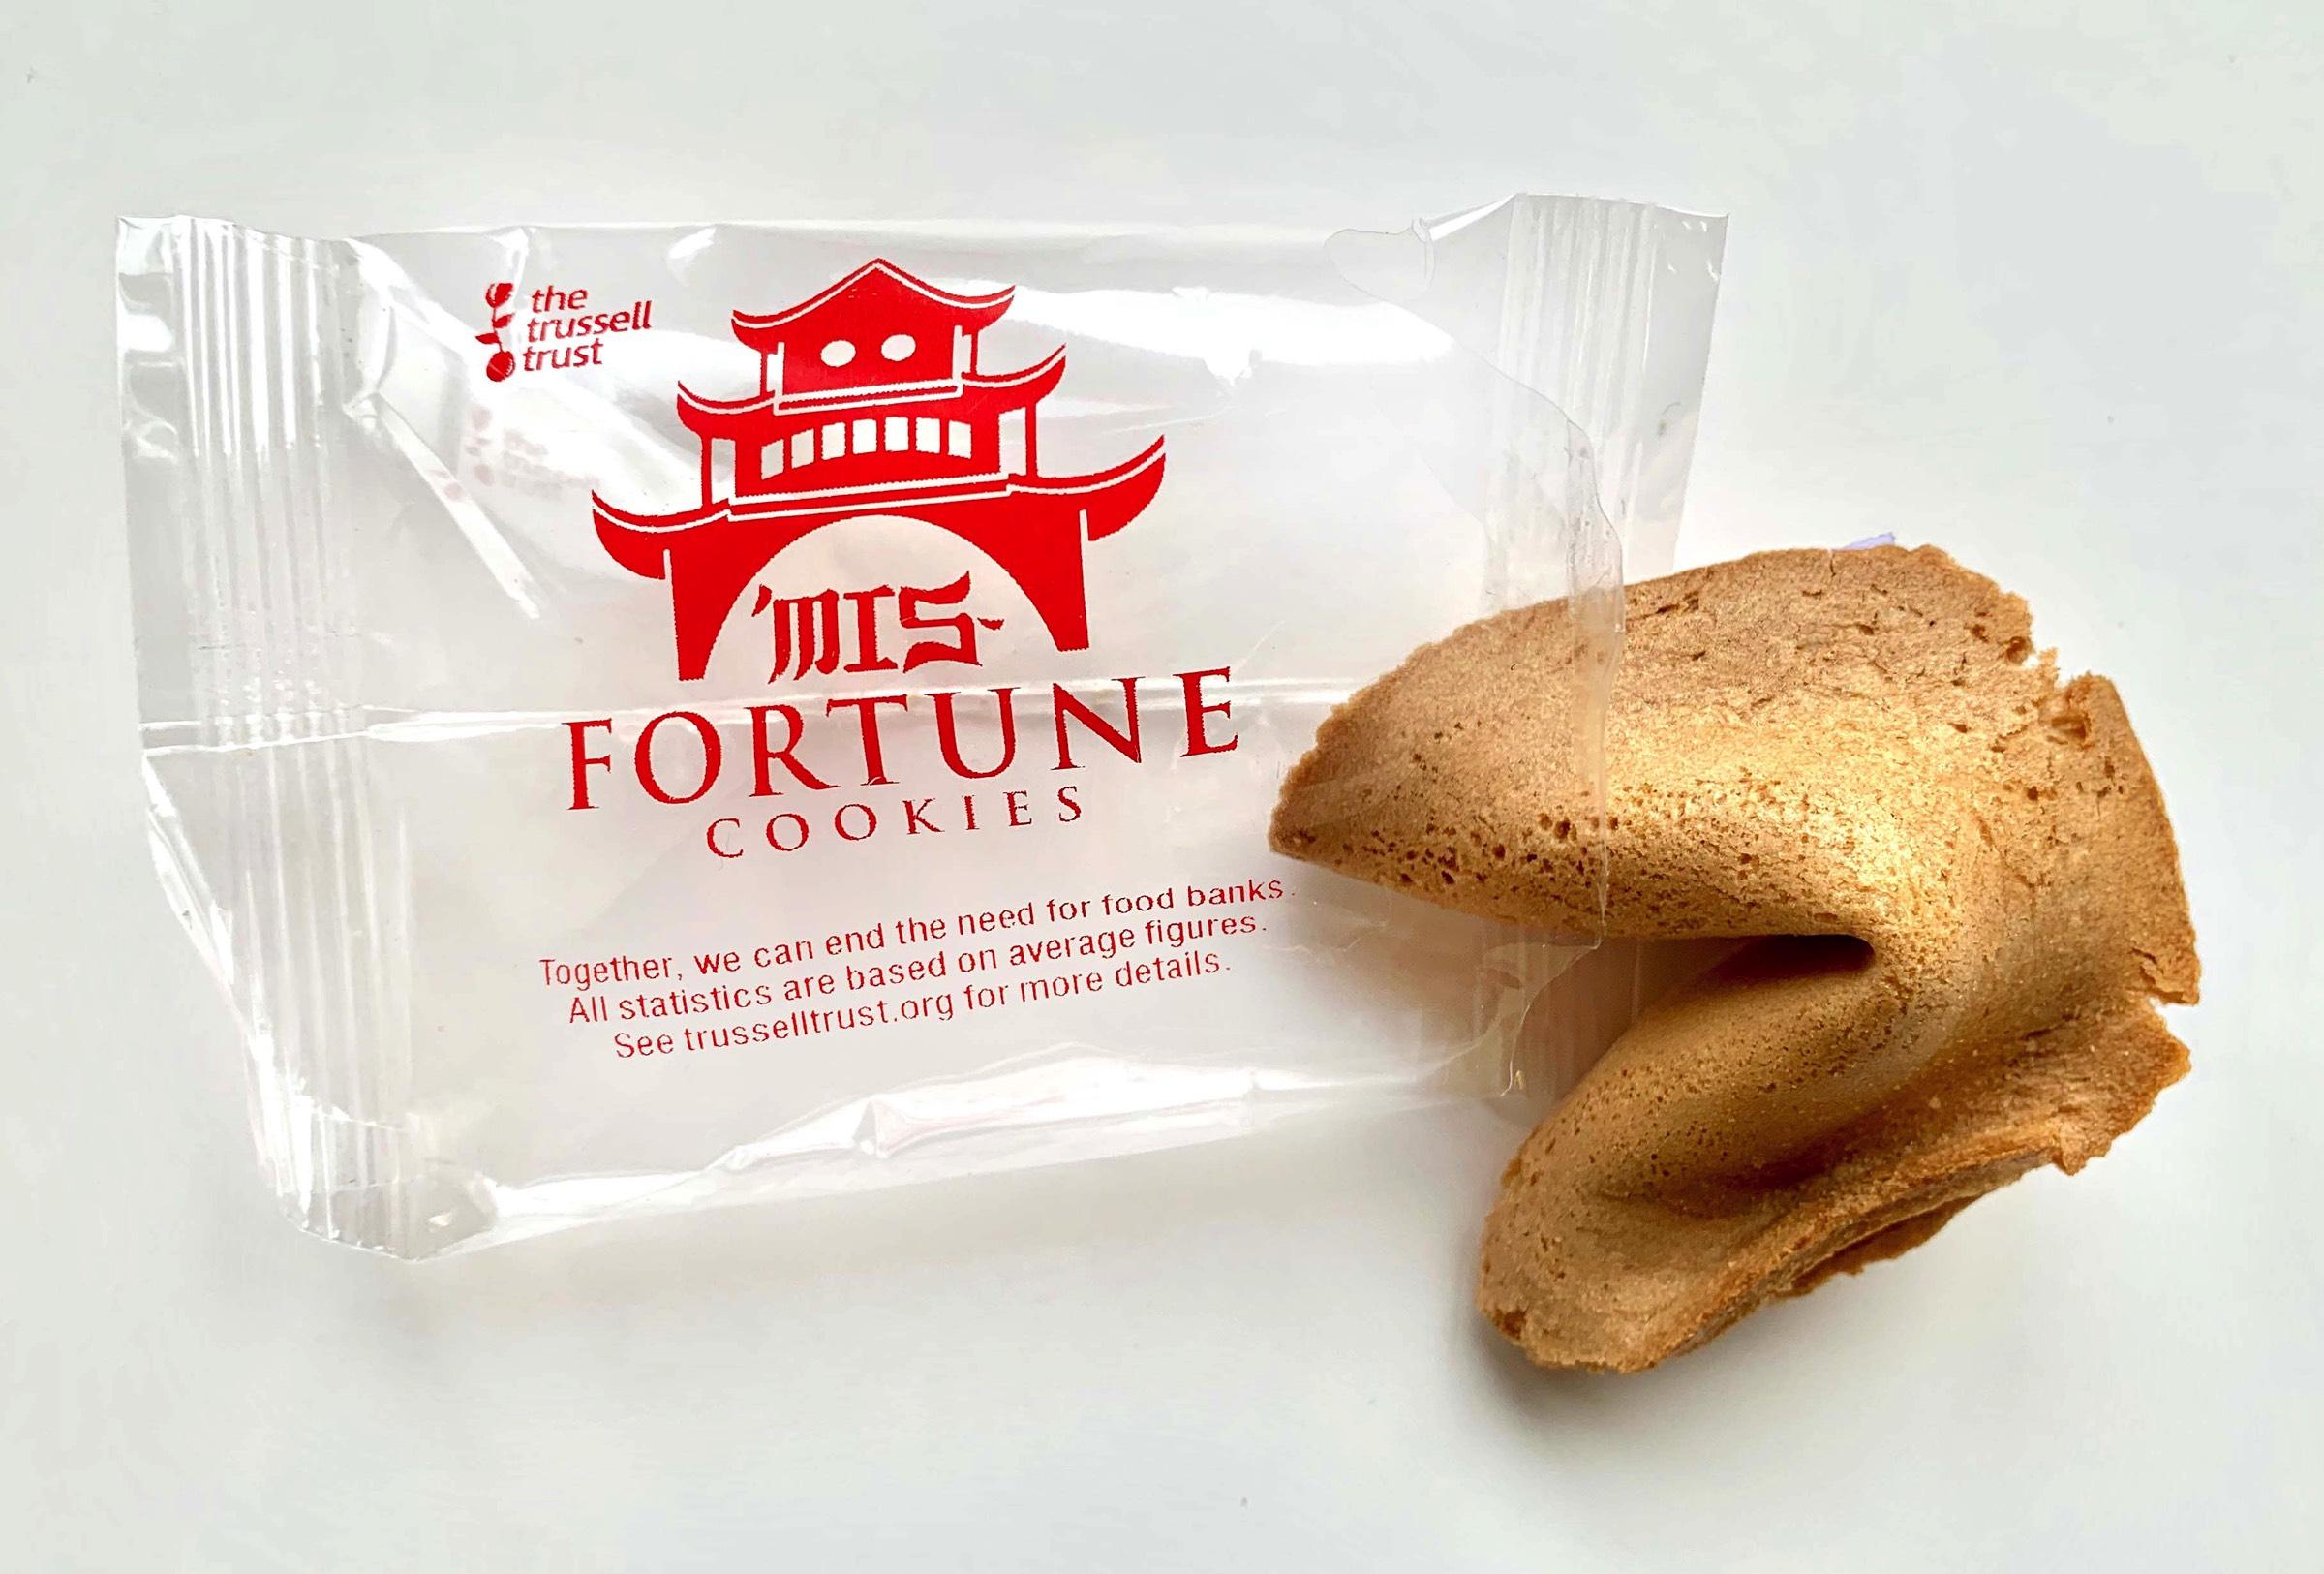 The Trussell Trust: Misfortune Cookies